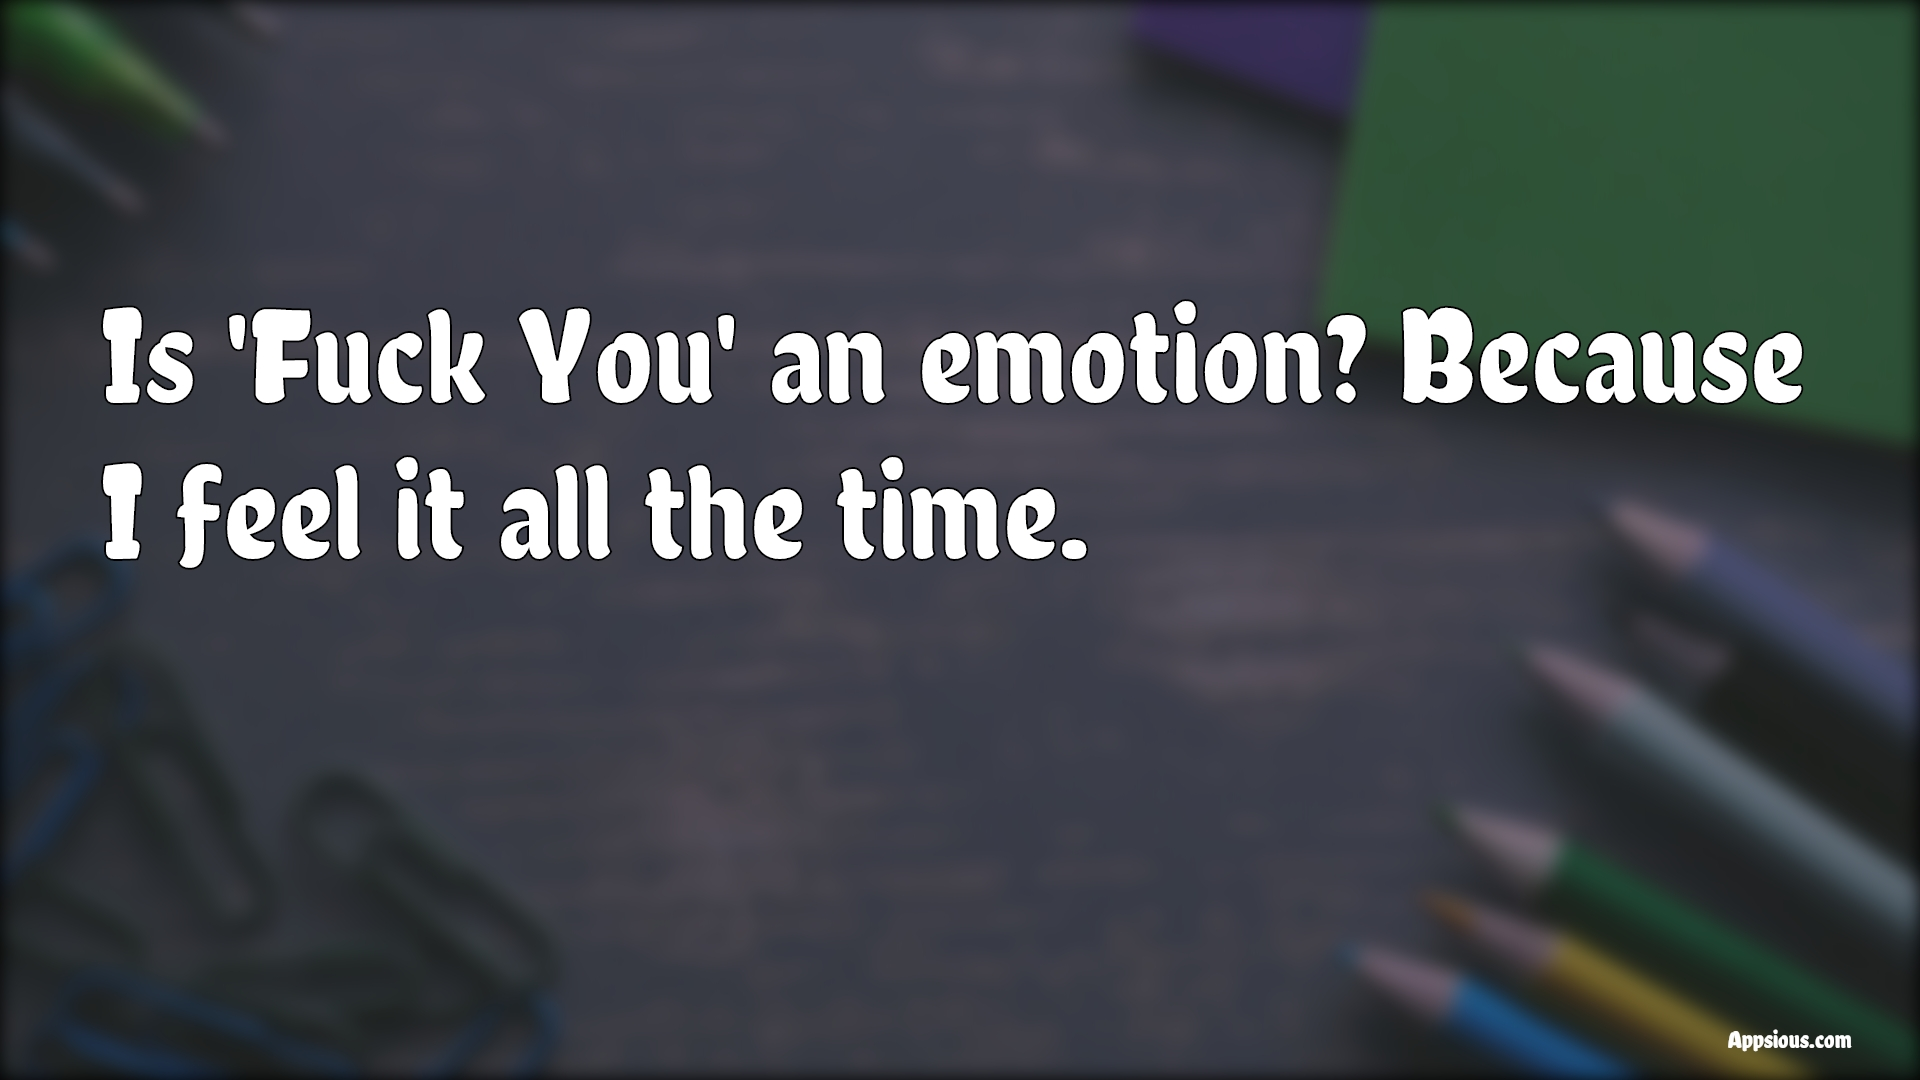 Is 'Fuck You' an emotion? Because I feel it all the time.